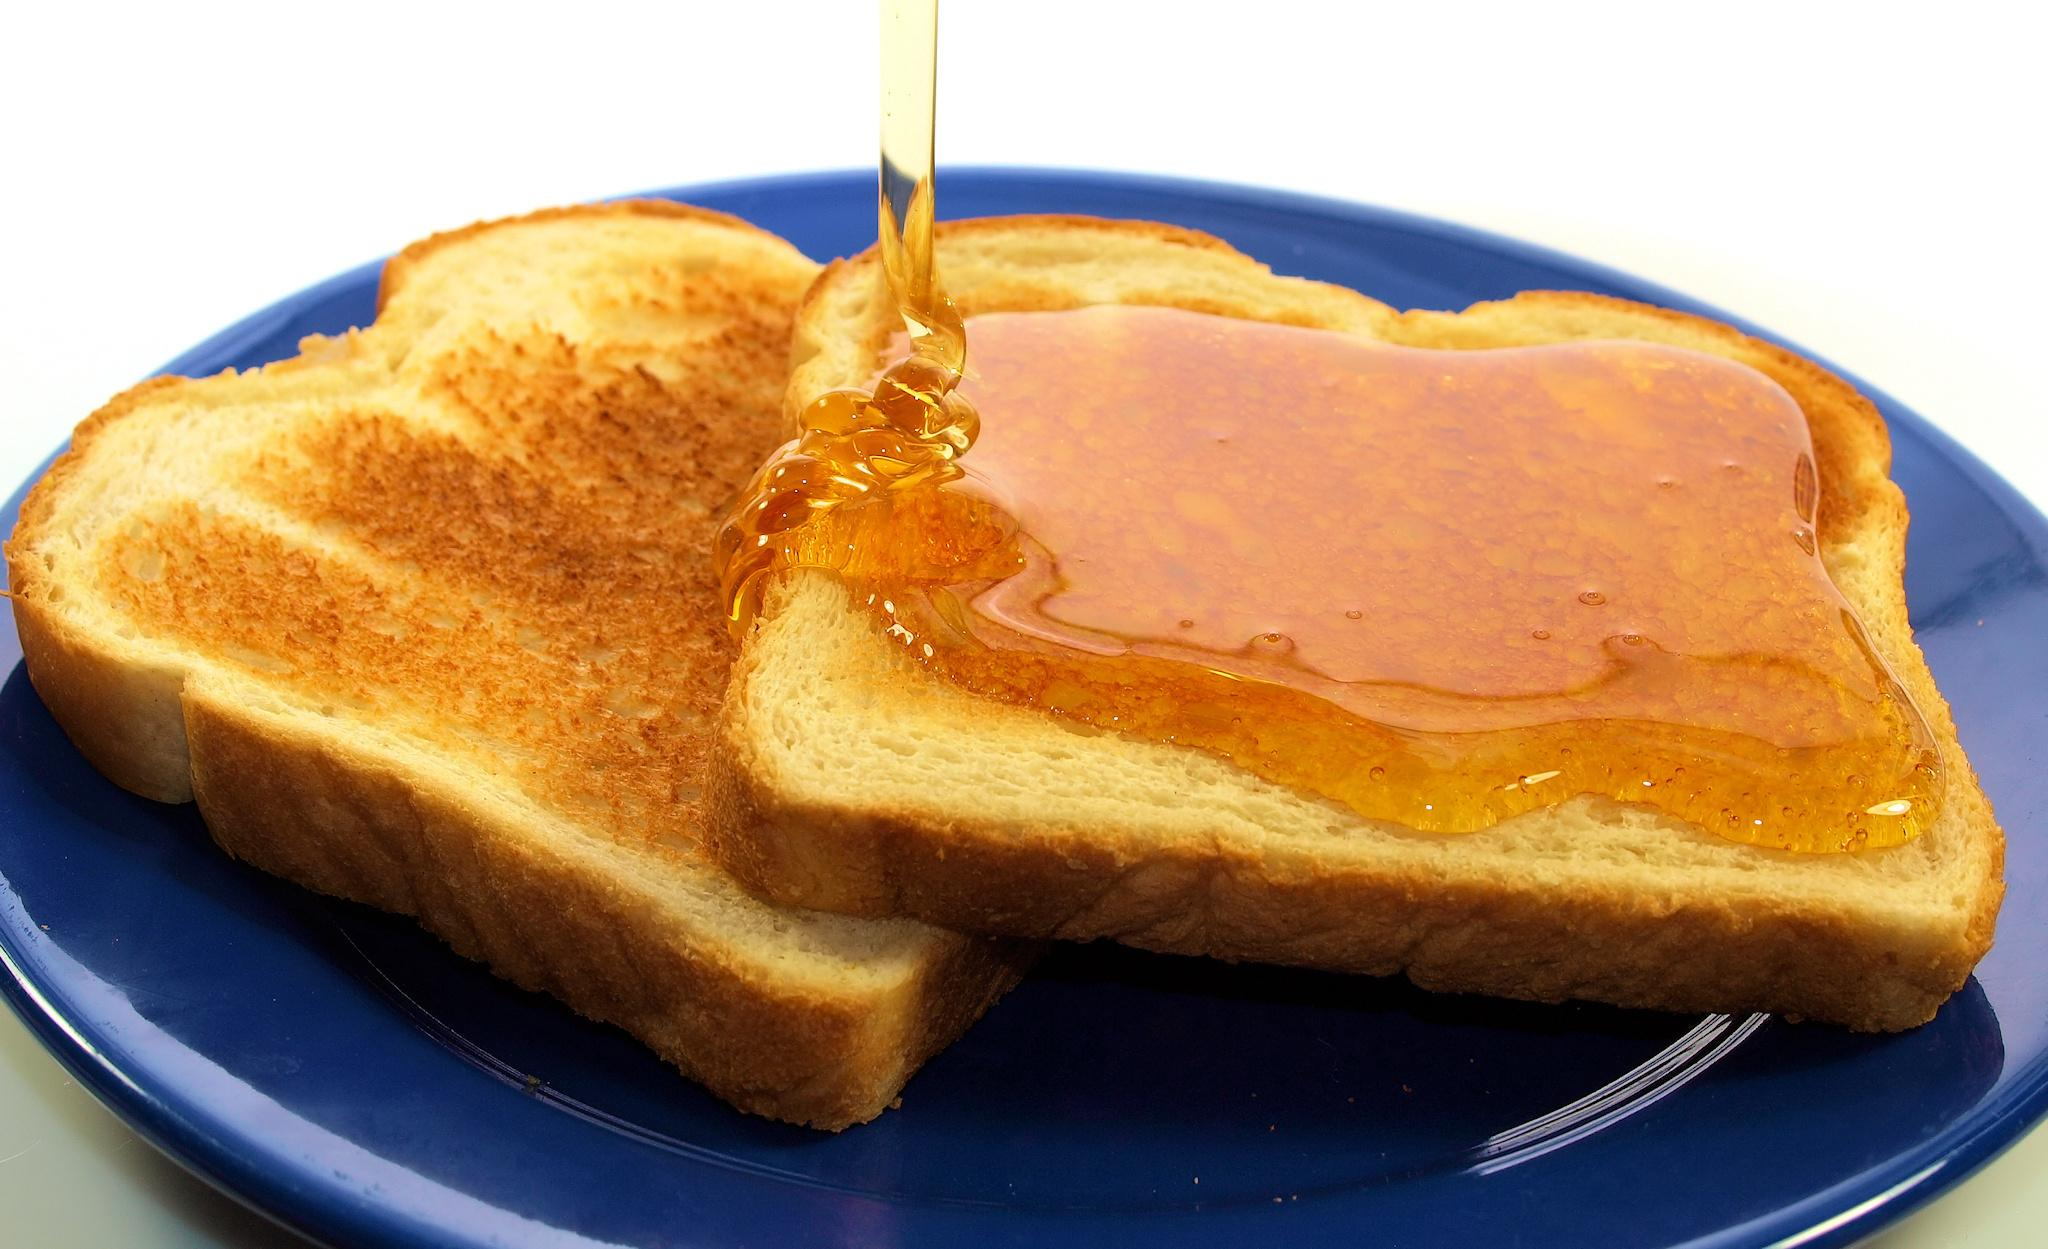 Honey tost